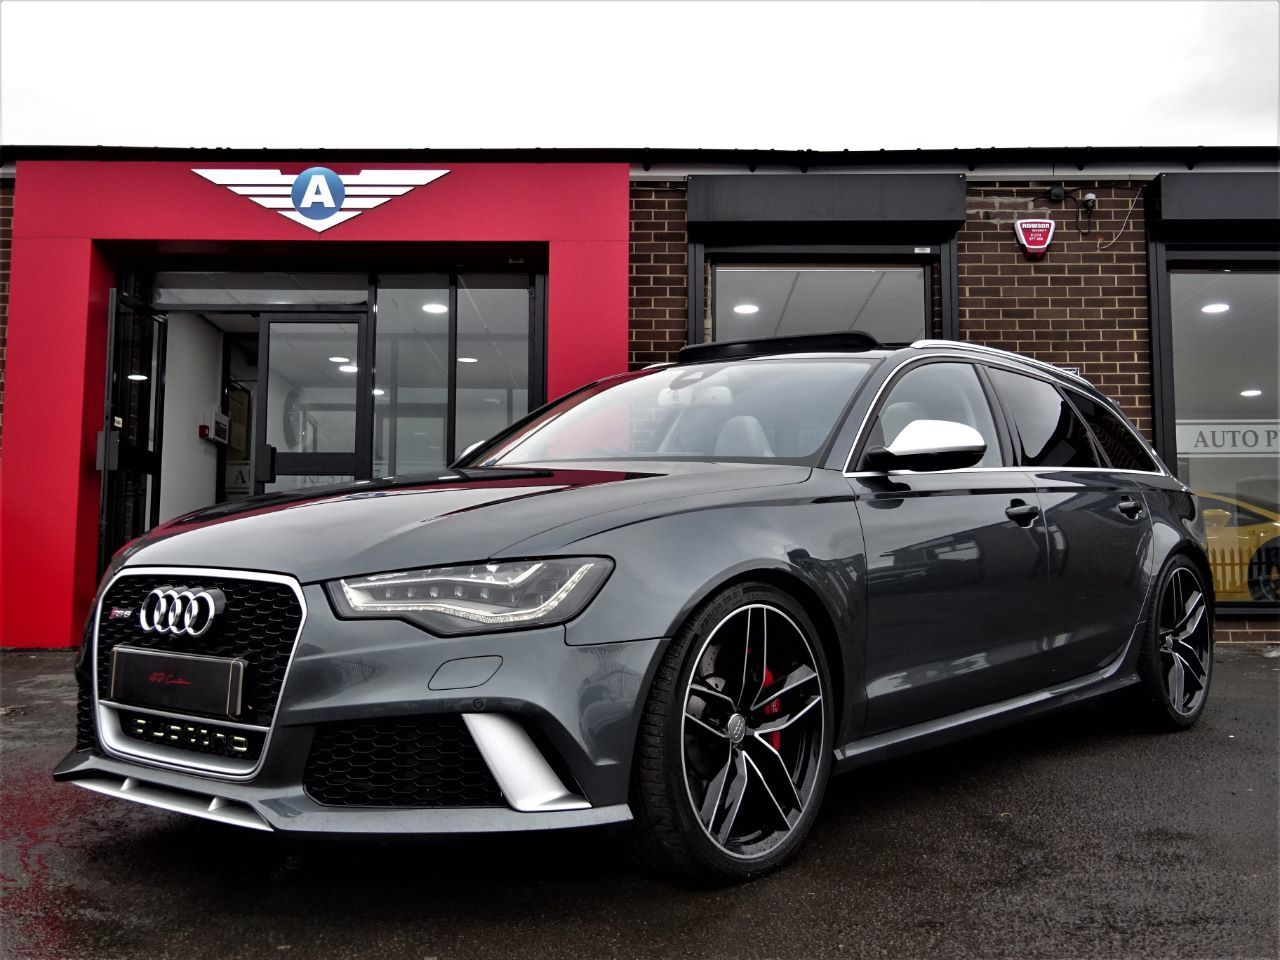 Audi RS6 4.0 BI-TURBO 560 MODEL 64 REG EVERY POSSIBLE EXTRA EXTENSIVE HISTORY FILE AS NEW NIGHT VISION PAN ROOF Estate Petrol Grey at Autoprestige Bradford